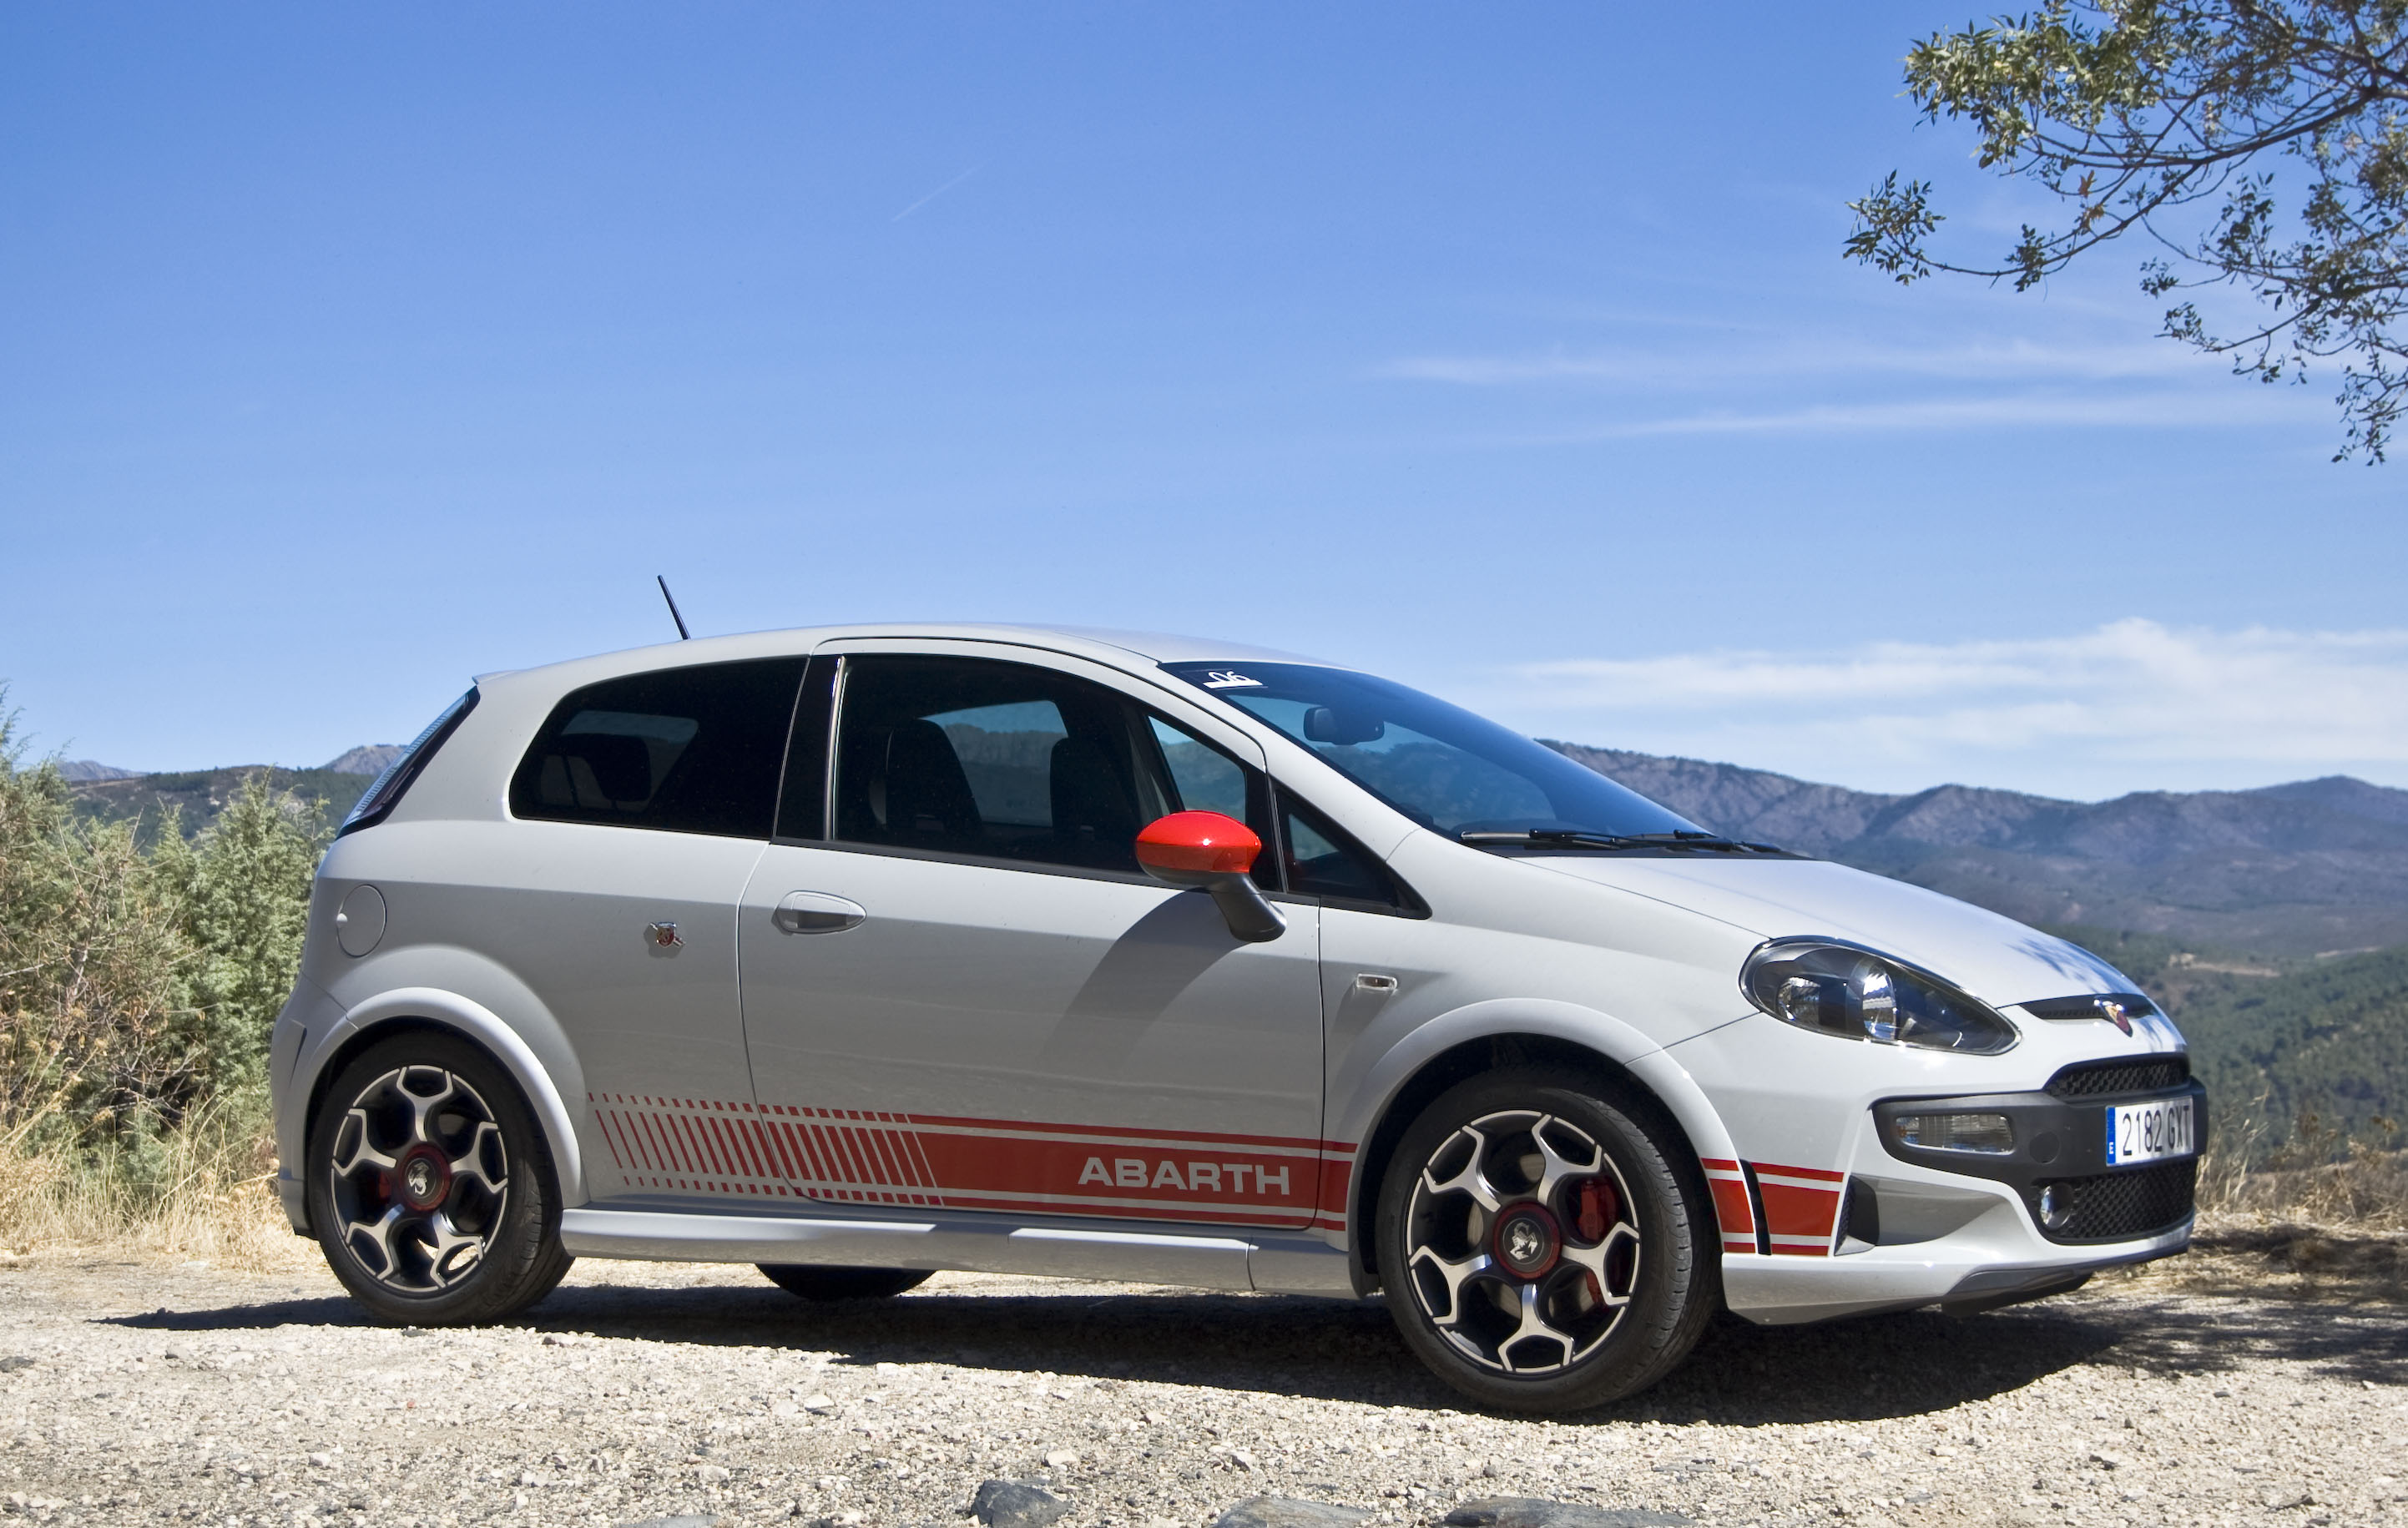 file abarth punto evo flickr david villarreal fern wikipedia. Black Bedroom Furniture Sets. Home Design Ideas